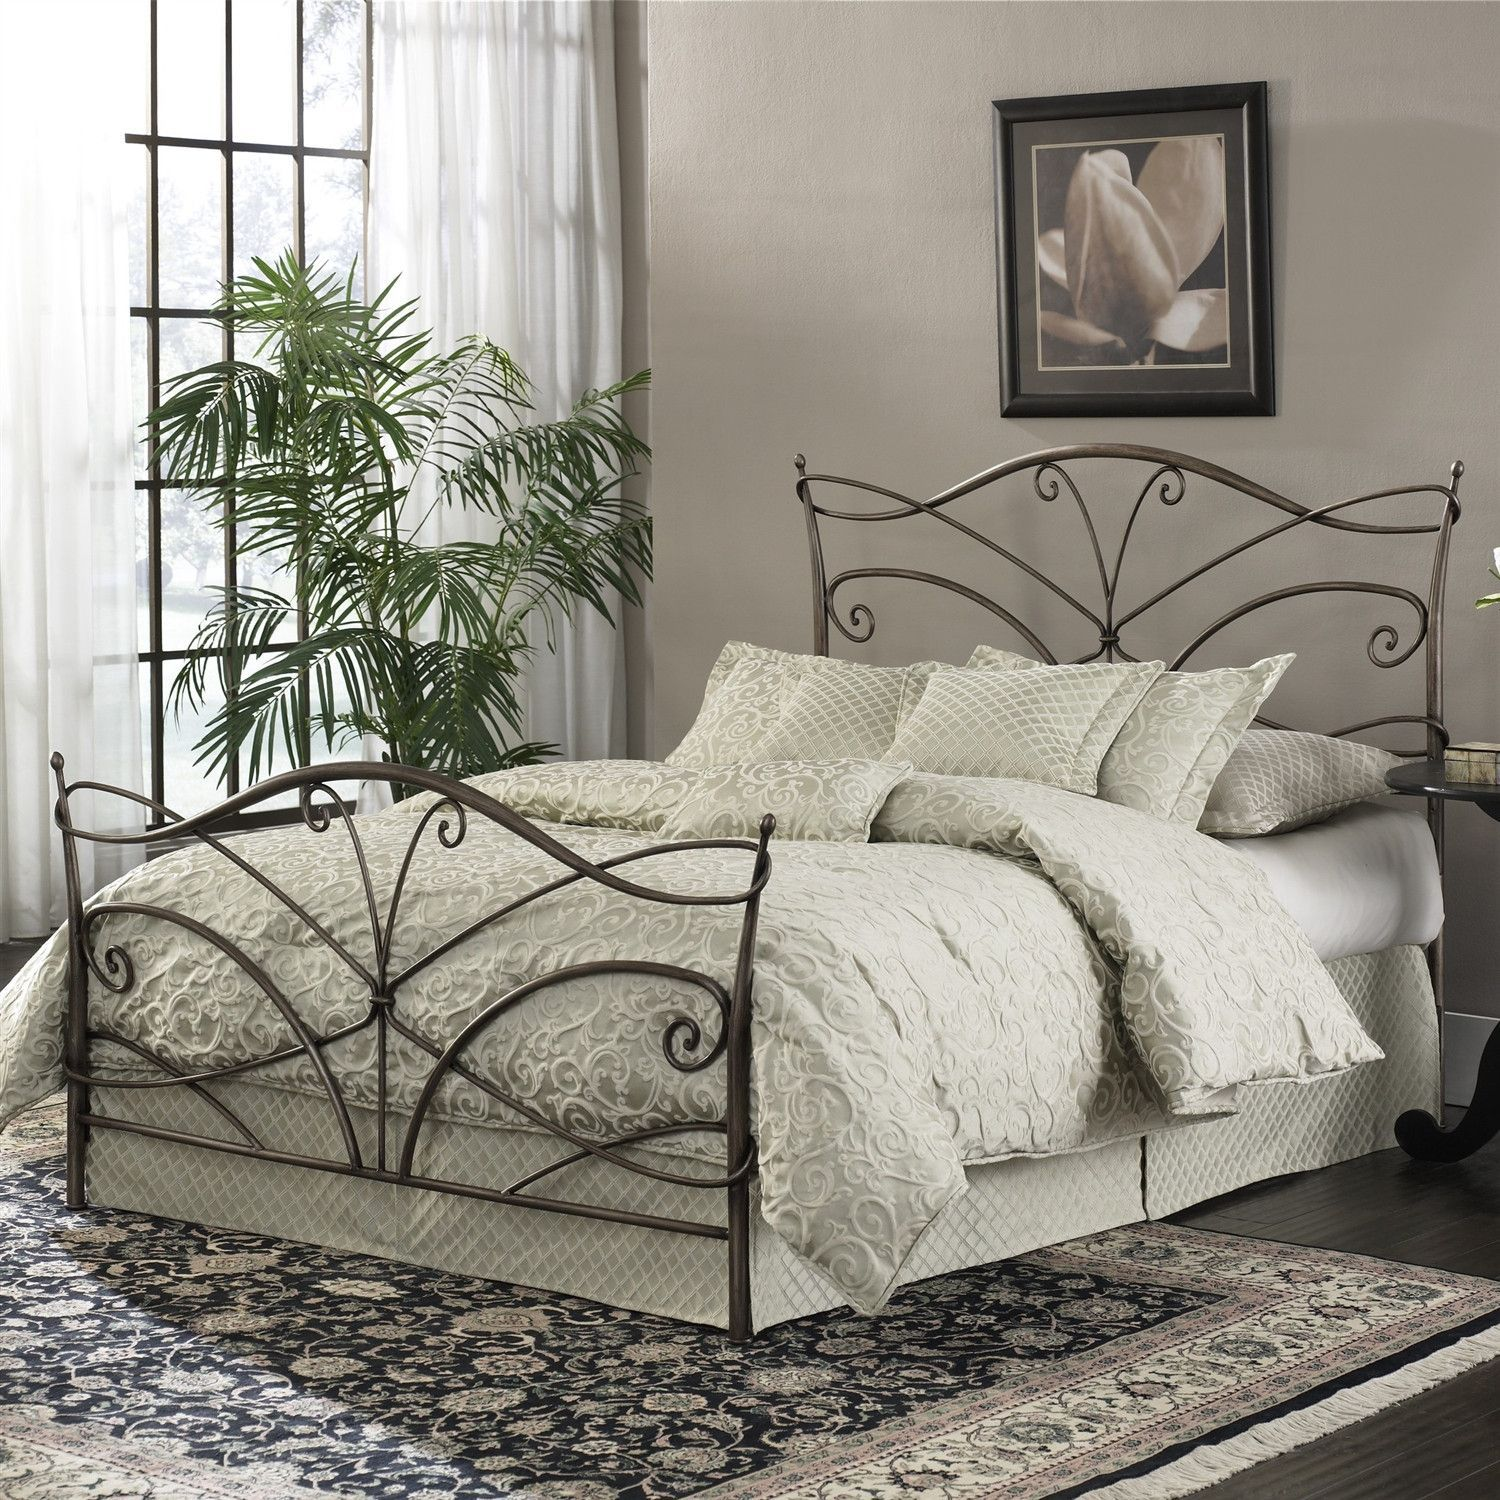 Queen size Metal Bed with Headboard and Footboard in Brushed Bronze ...